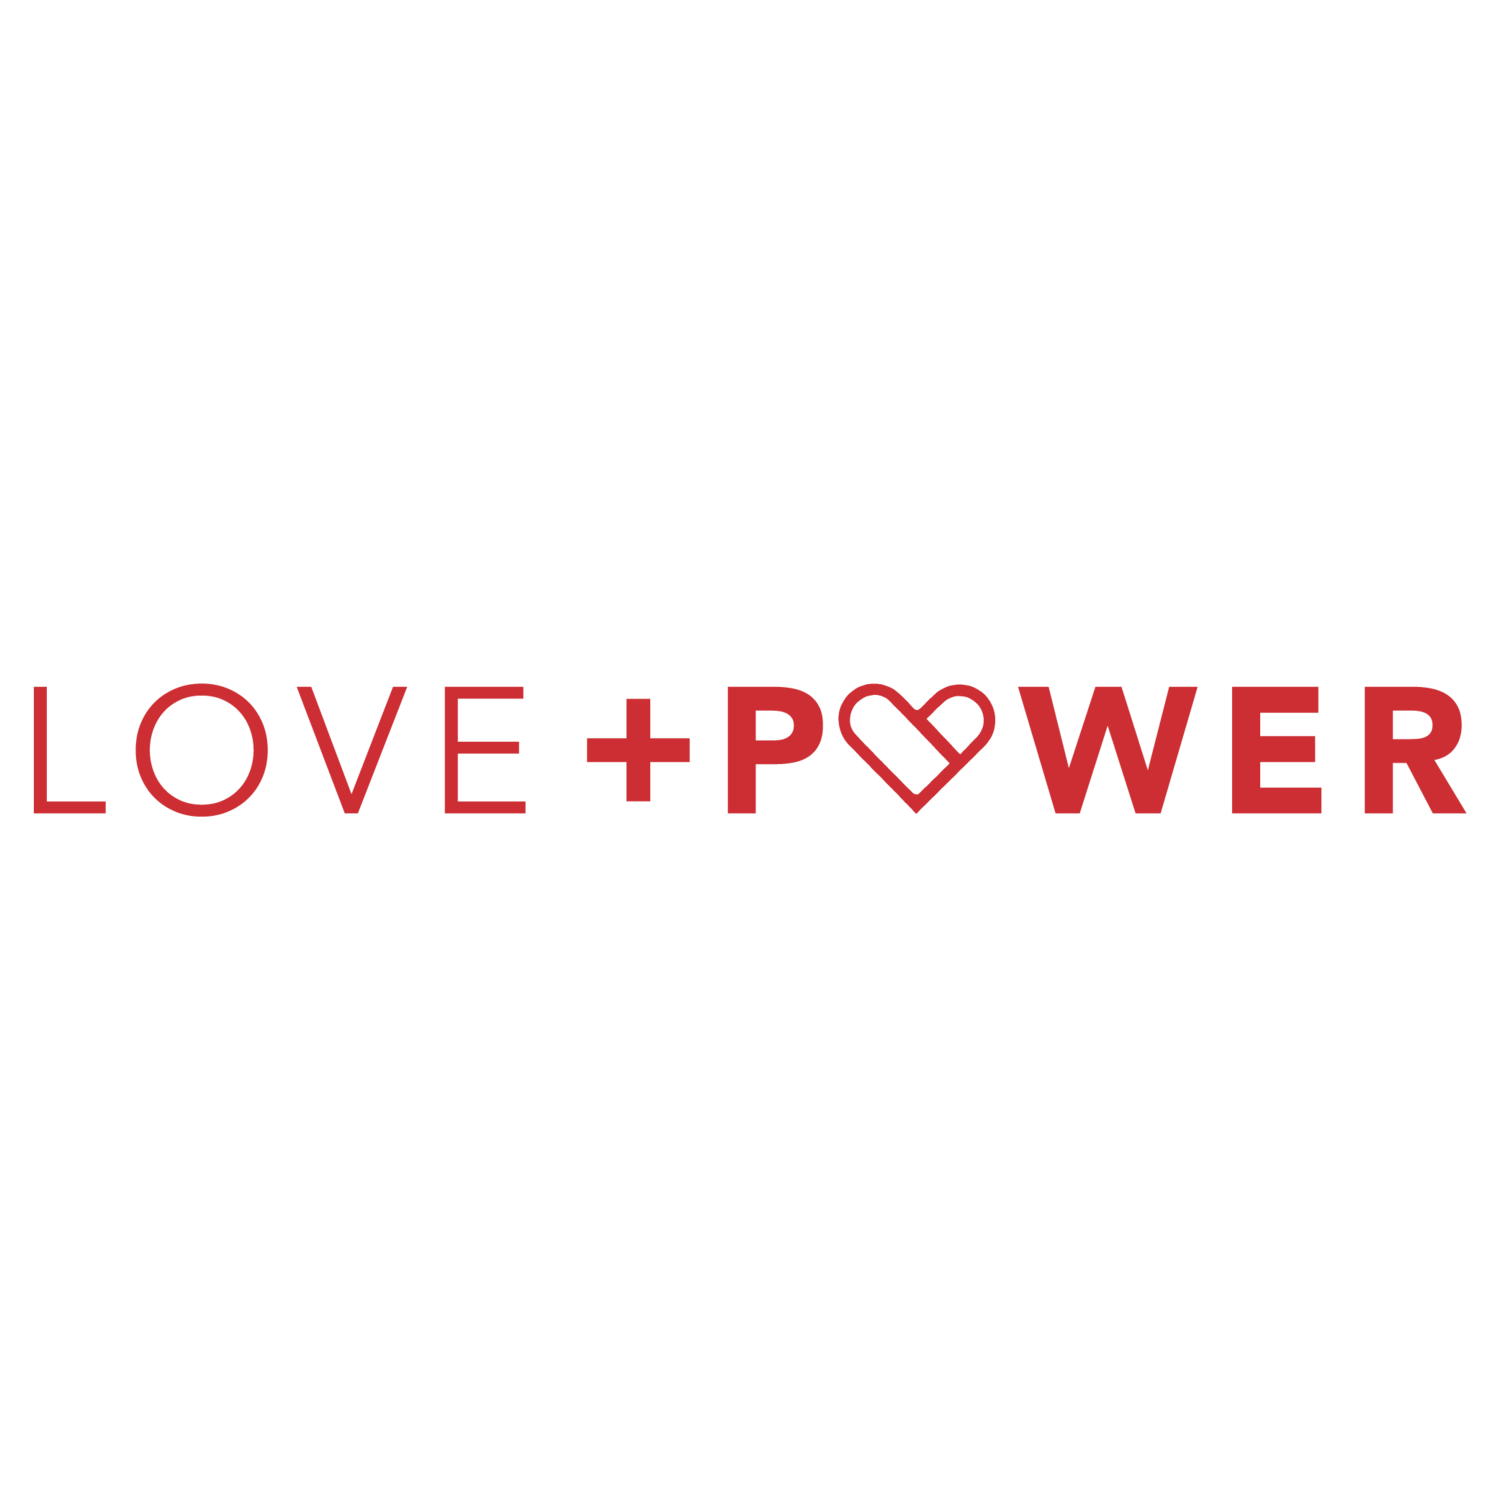 LOVE + POWER